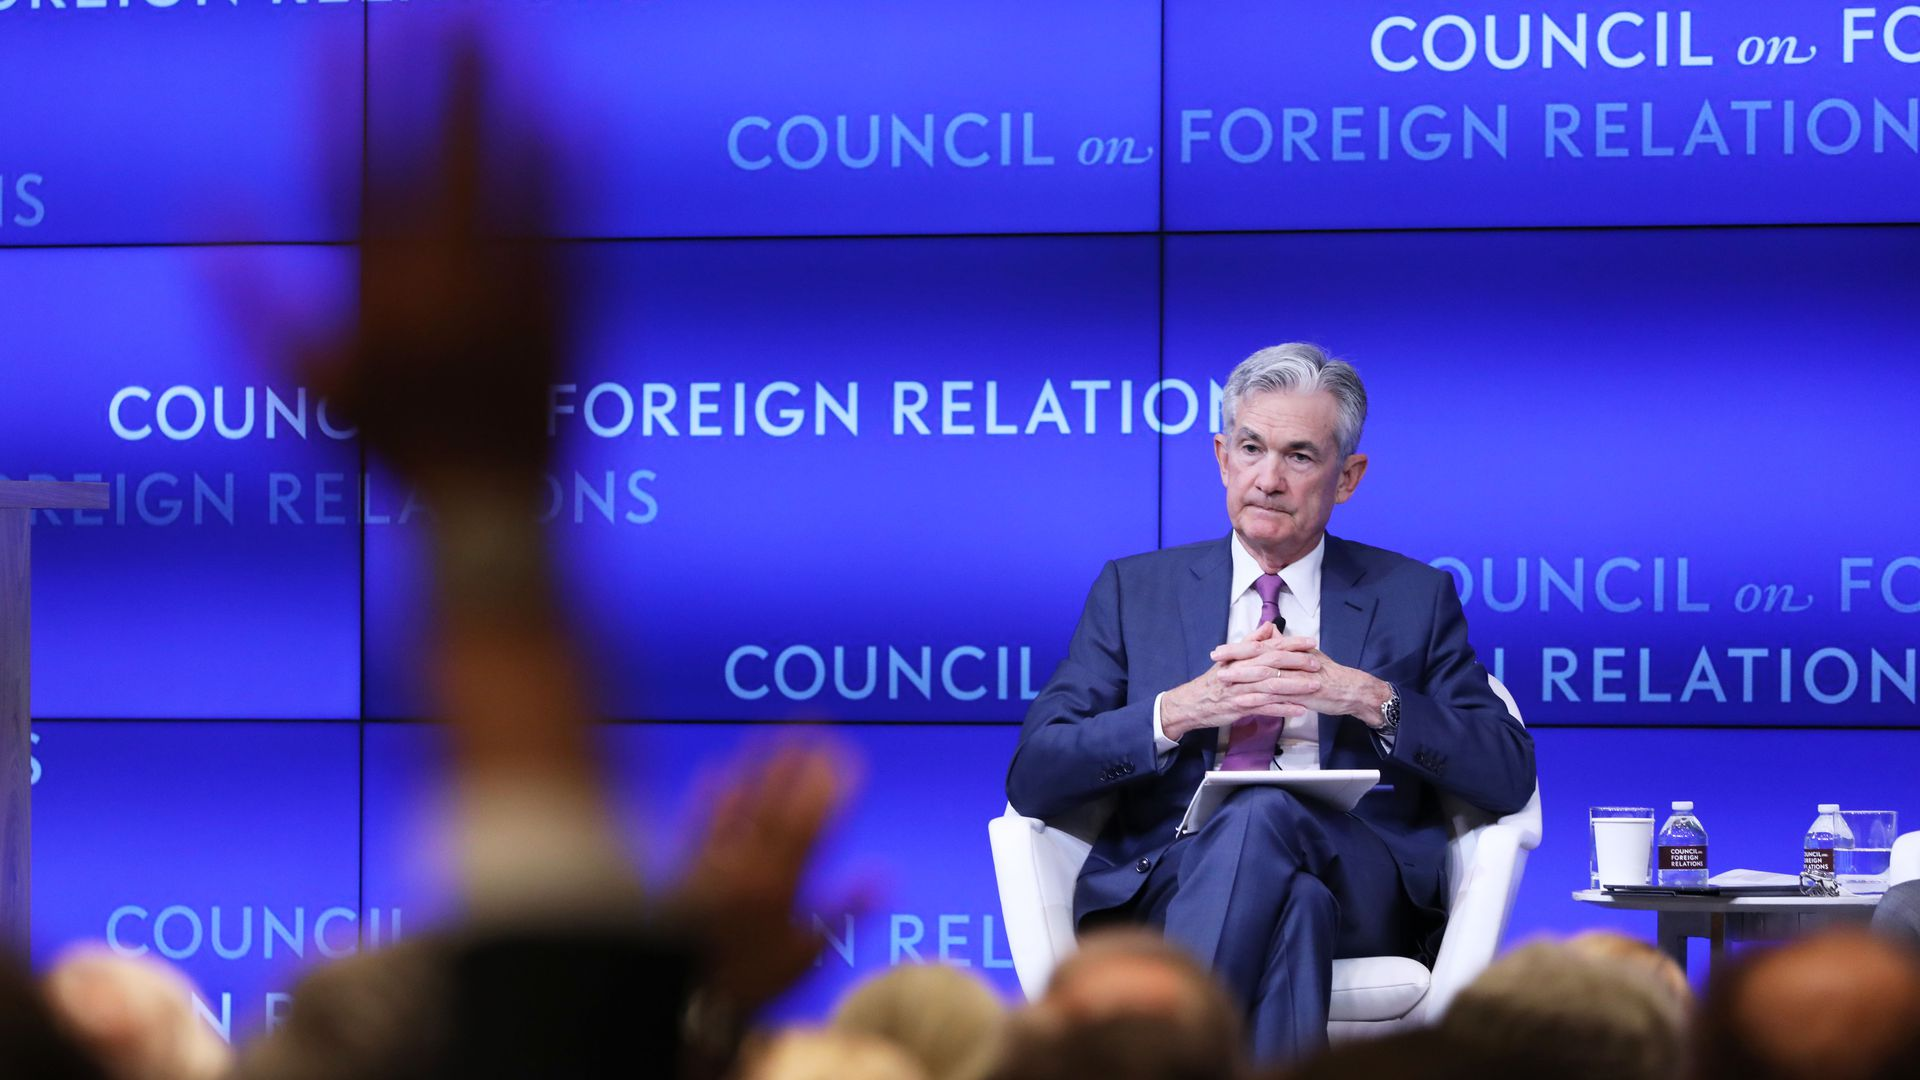 Jerome Powell (left), chairman of the Board of Governors of the Federal Reserve, takes questions at the Council on Foreign Relations.